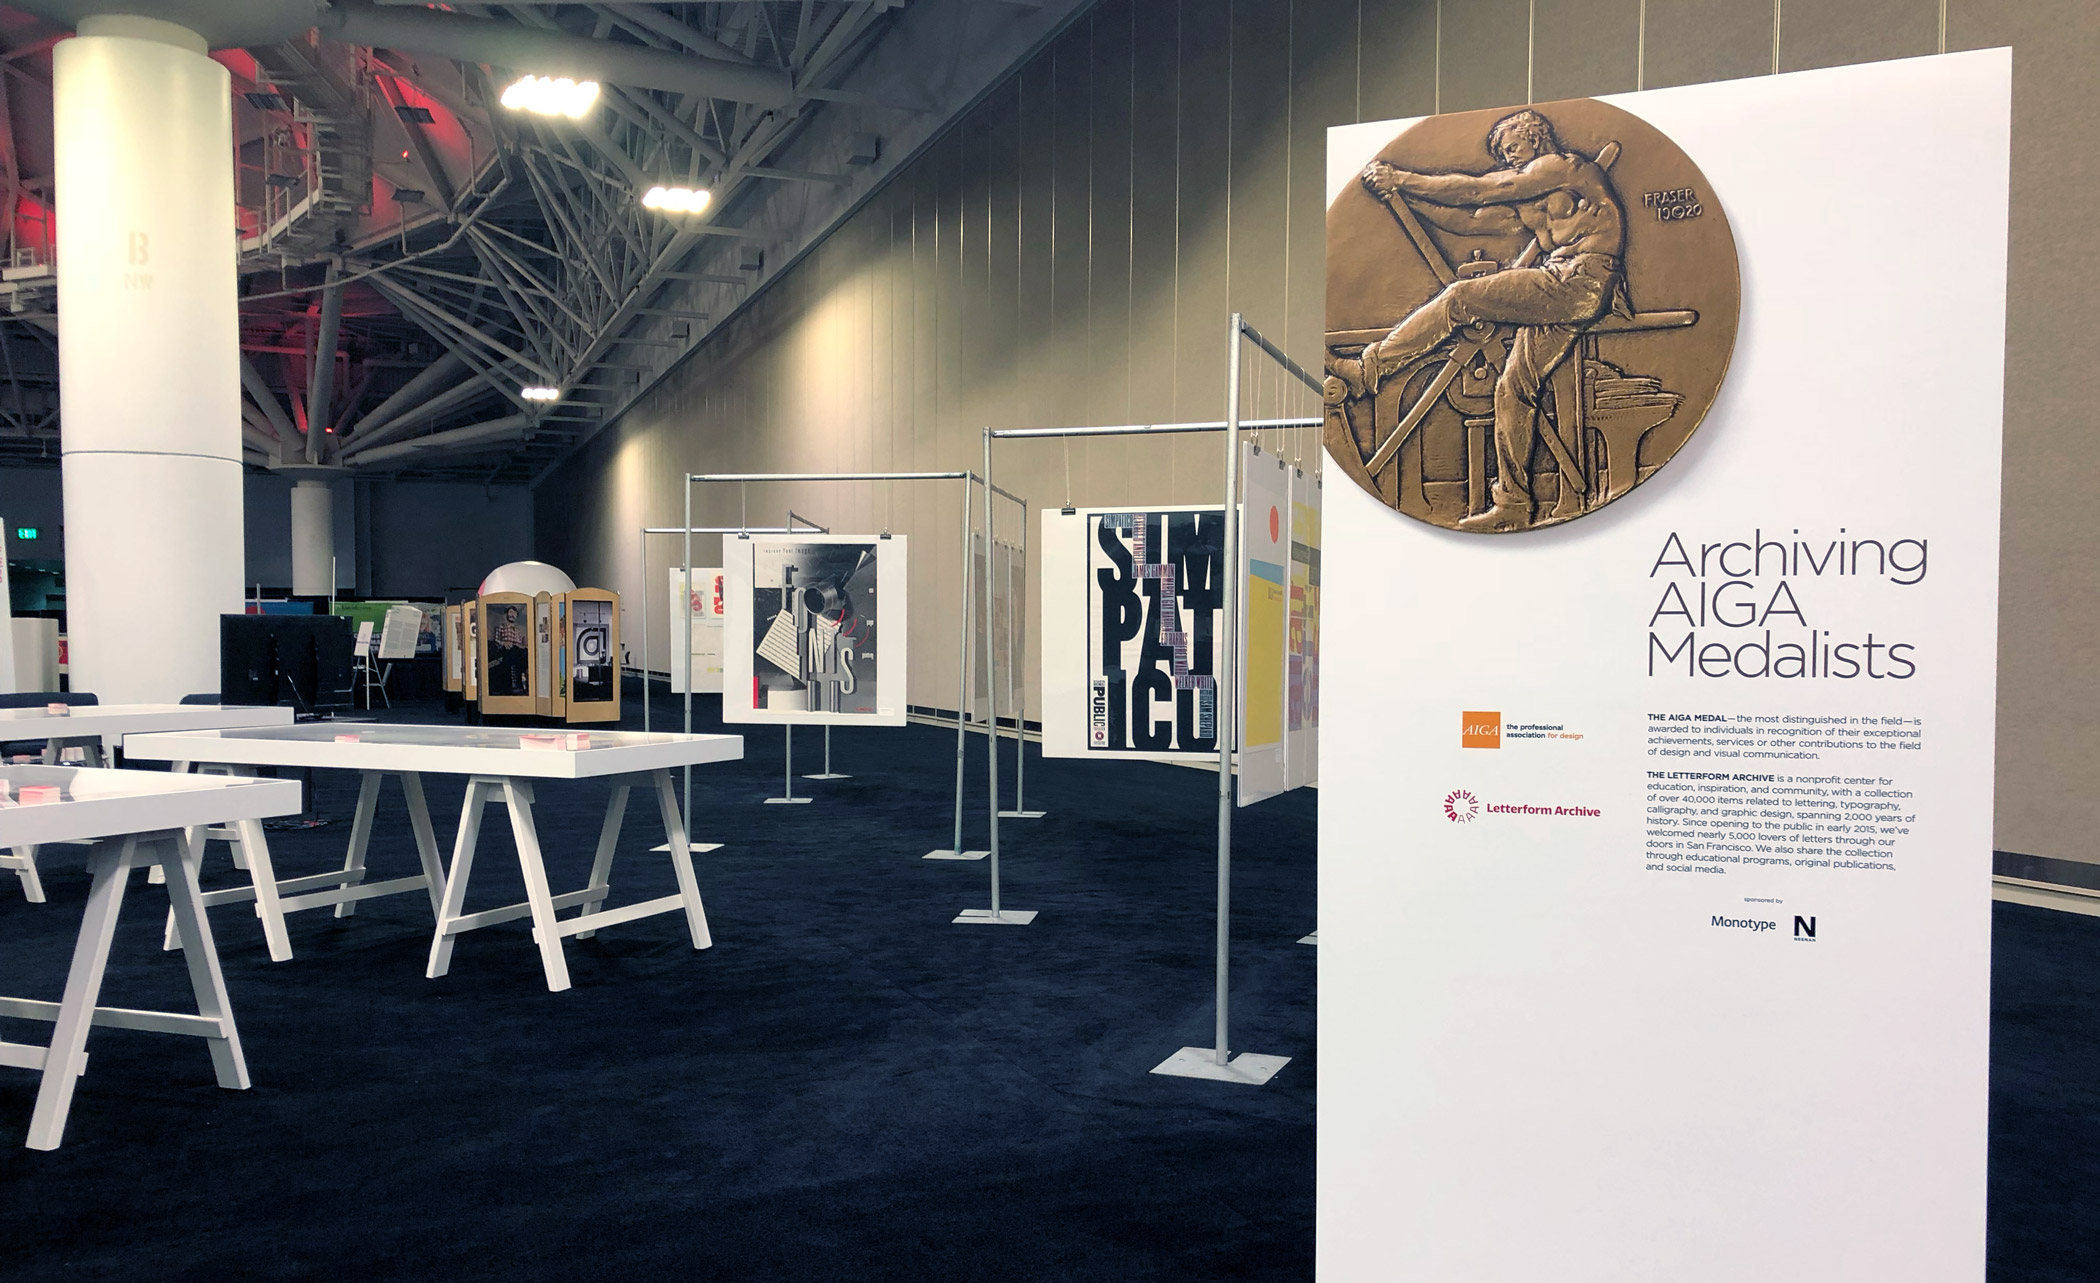 Archiving AIGA Medalists exhibit